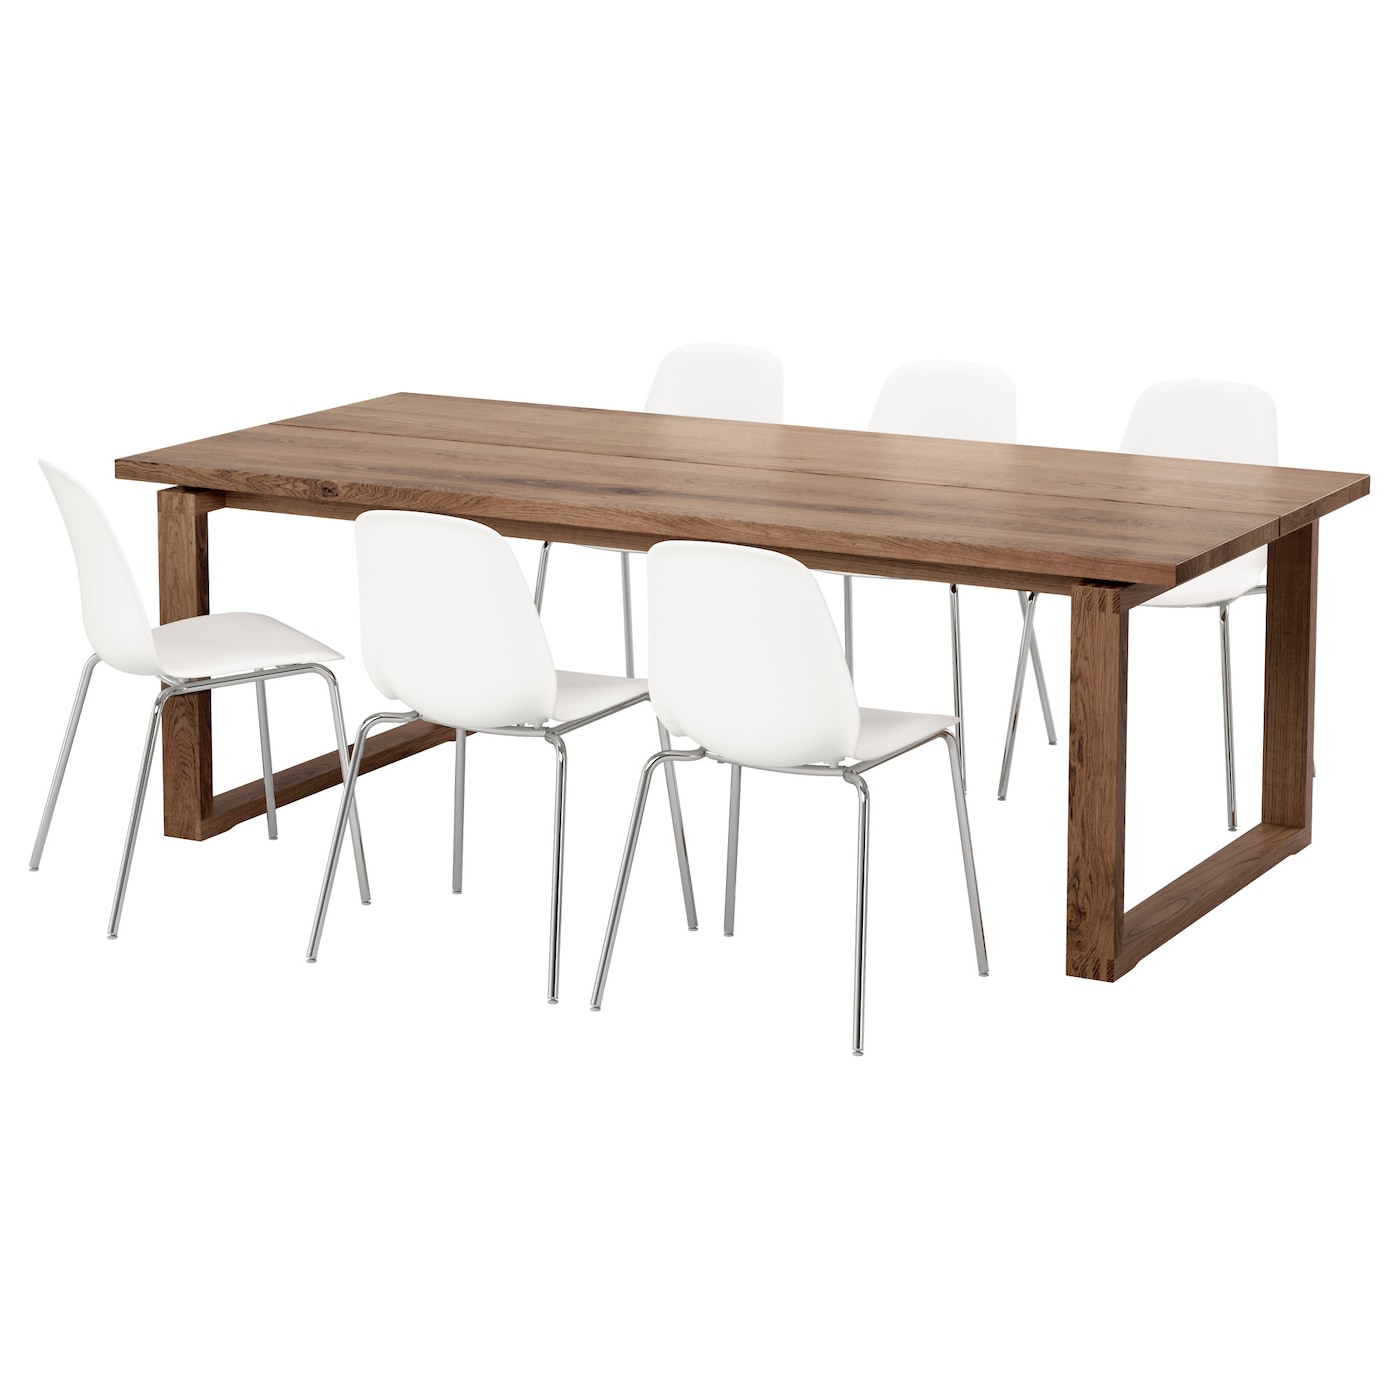 Ikea Breakfast Table: LEIFARNE/MÖRBYLÅNGA Table And 6 Chairs Brown/white 220 X